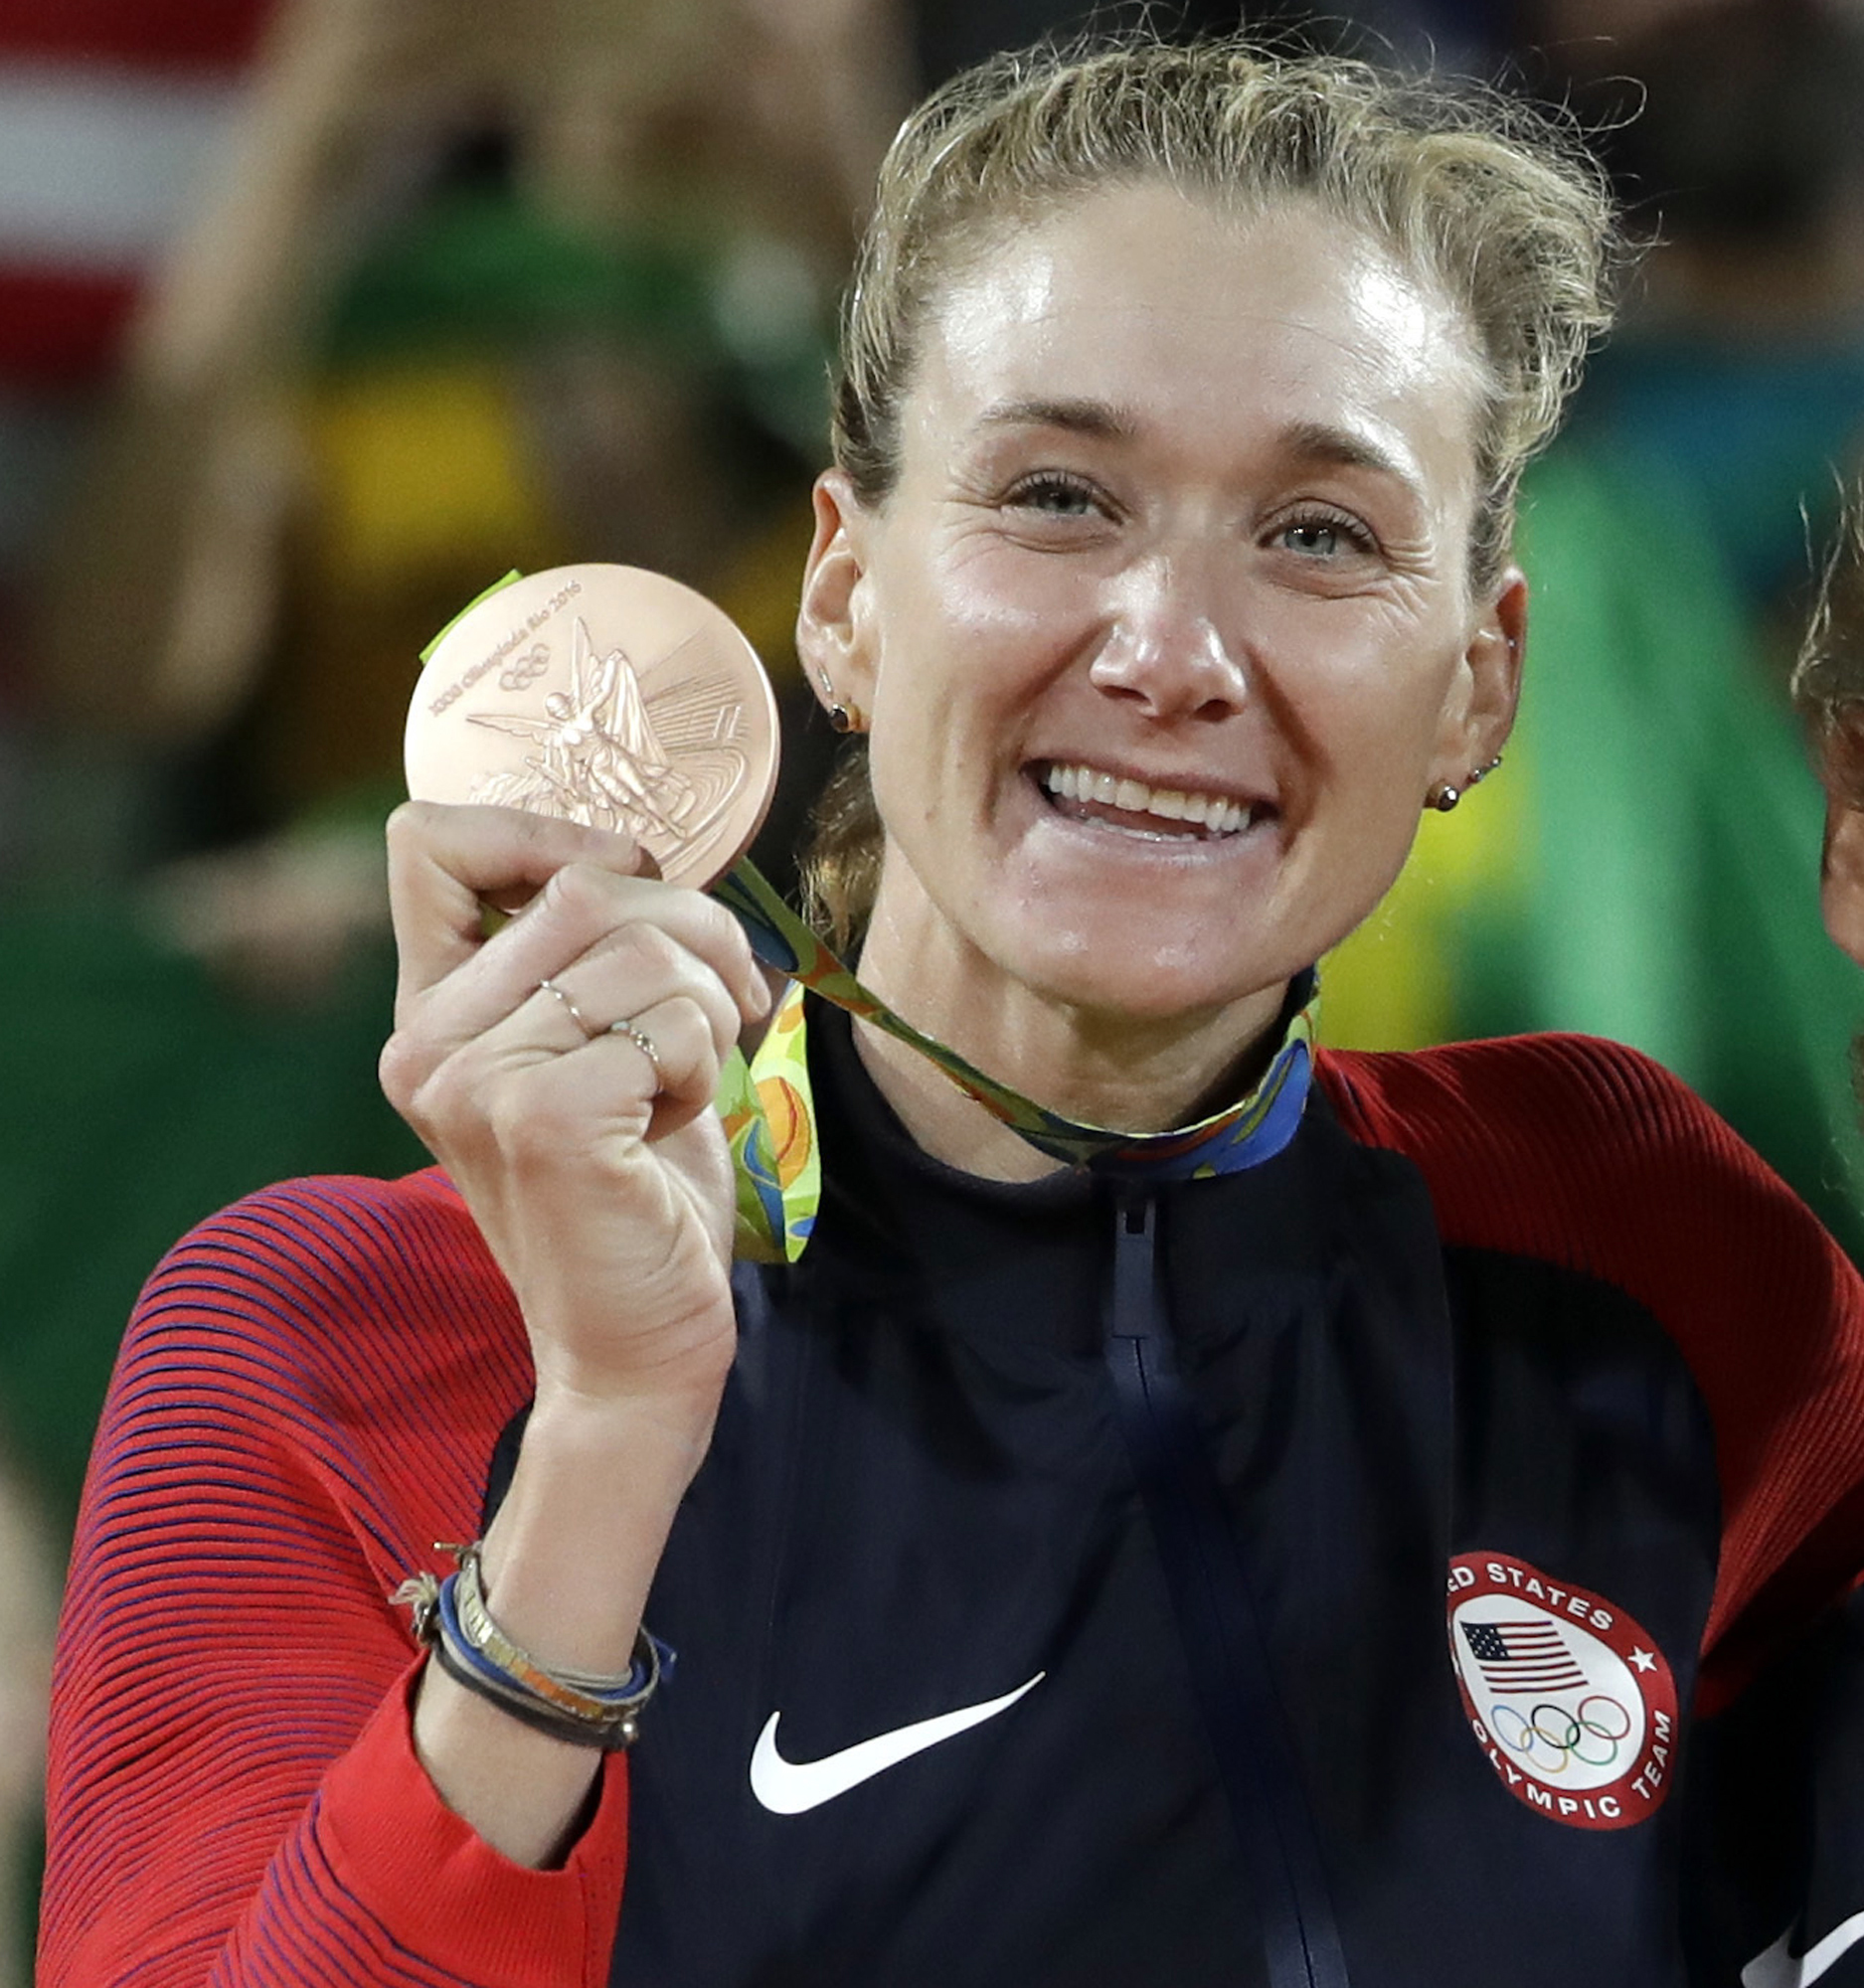 FILE - In this Aug. 18, 2016, file photo, United States' Kerri Walsh Jennings stands on the podium after winning the bronze medal in the women's beach volleyball competition of the 2016 Summer Olympics in Rio de Janeiro, Brazil. More than 100 athletes fro